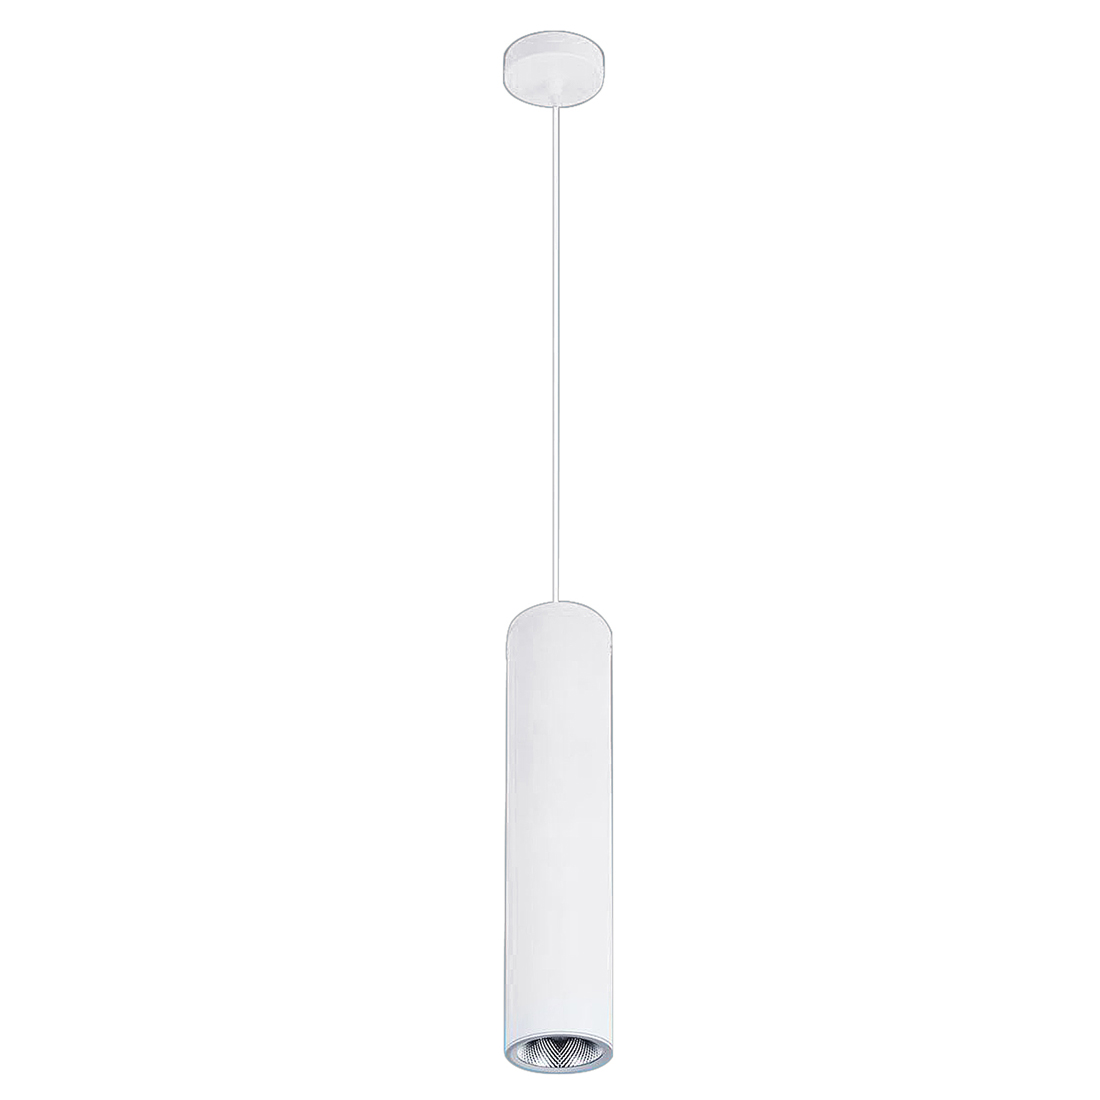 Modern Minimalist Cafe Chandeliers Led Restaurant COB Spotlights Long Tube Hanging Lamp Bar Table Cylindrical Light